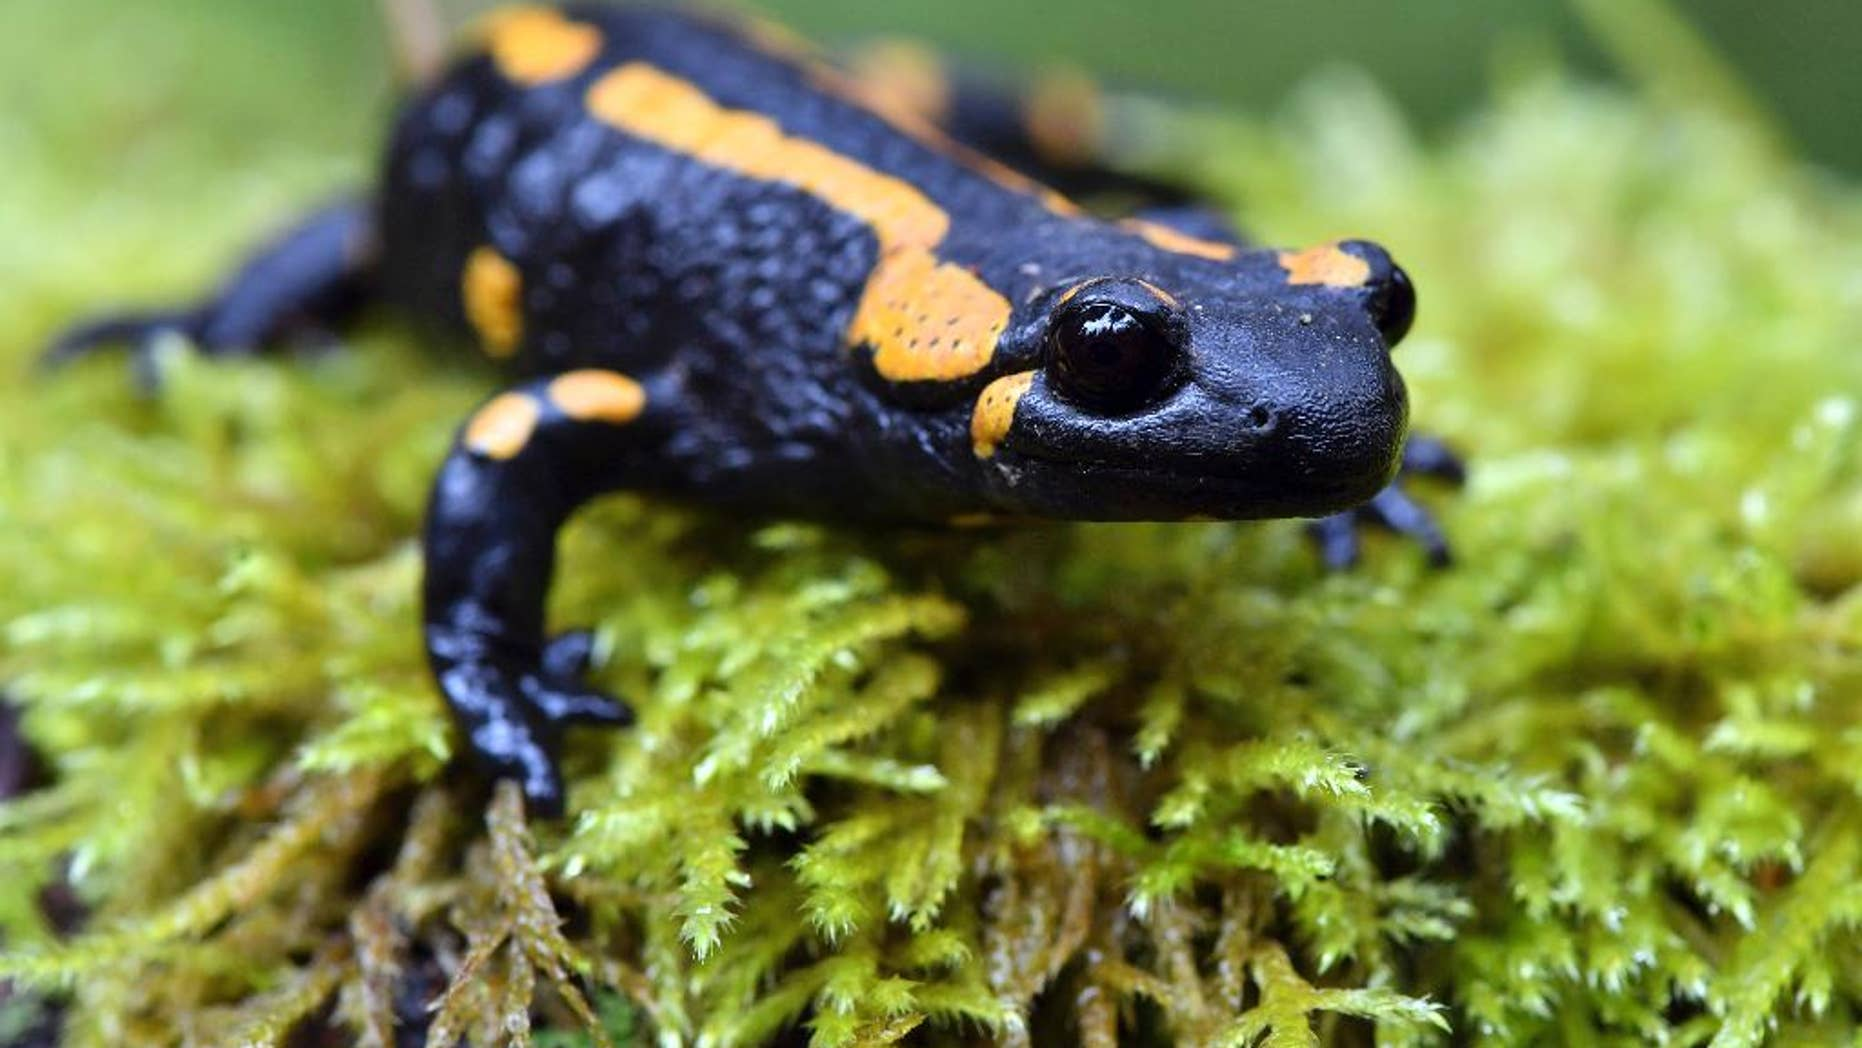 In this Oct. 18, 2016 file photo, a  fire salamander perches on a mossy surface near Oberhof, Germany. Europe's salamanders could be decimated by an alien invader that has already wreaked havoc in some part of the continent, scientists say. Researchers who examined the impact of a non-native fungus on fire salamanders in Belgium and the Netherlands found that it is lethal to the amphibians and almost impossible to eradicate. (Martin Schutt/dpa via AP,file)